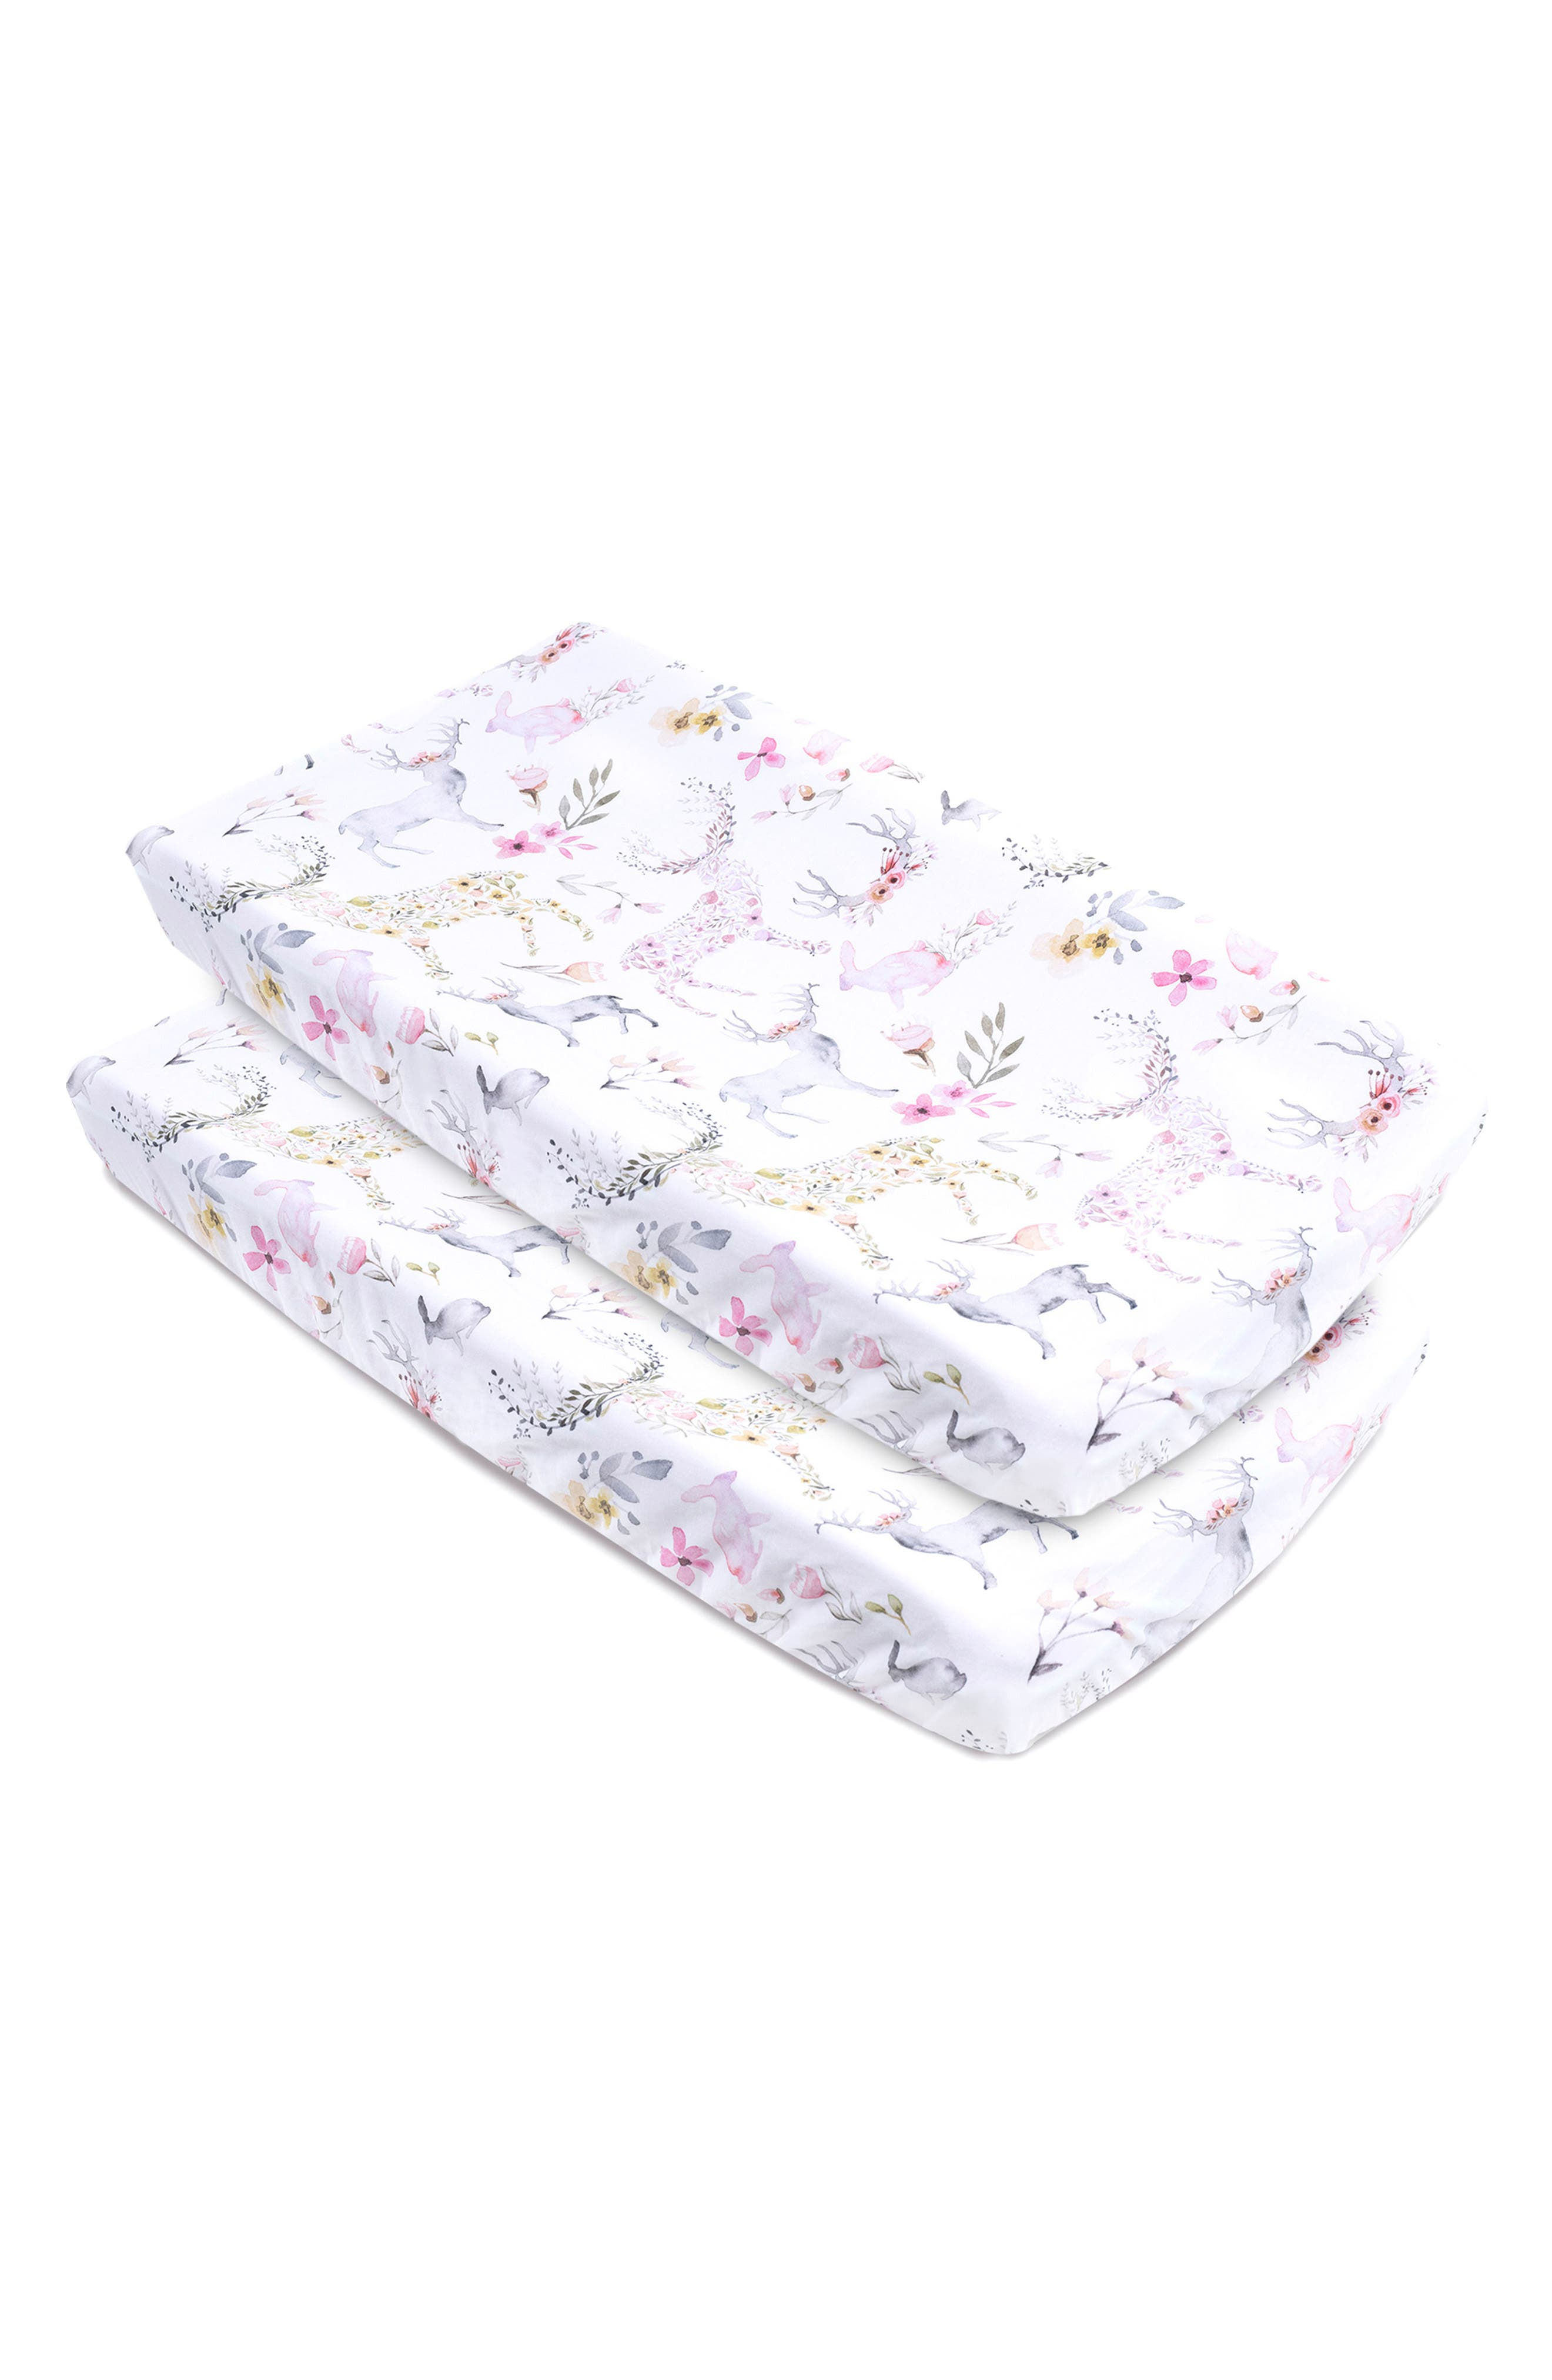 Fawn Print 2-Pack Changing Pad Covers,                         Main,                         color, Fawn